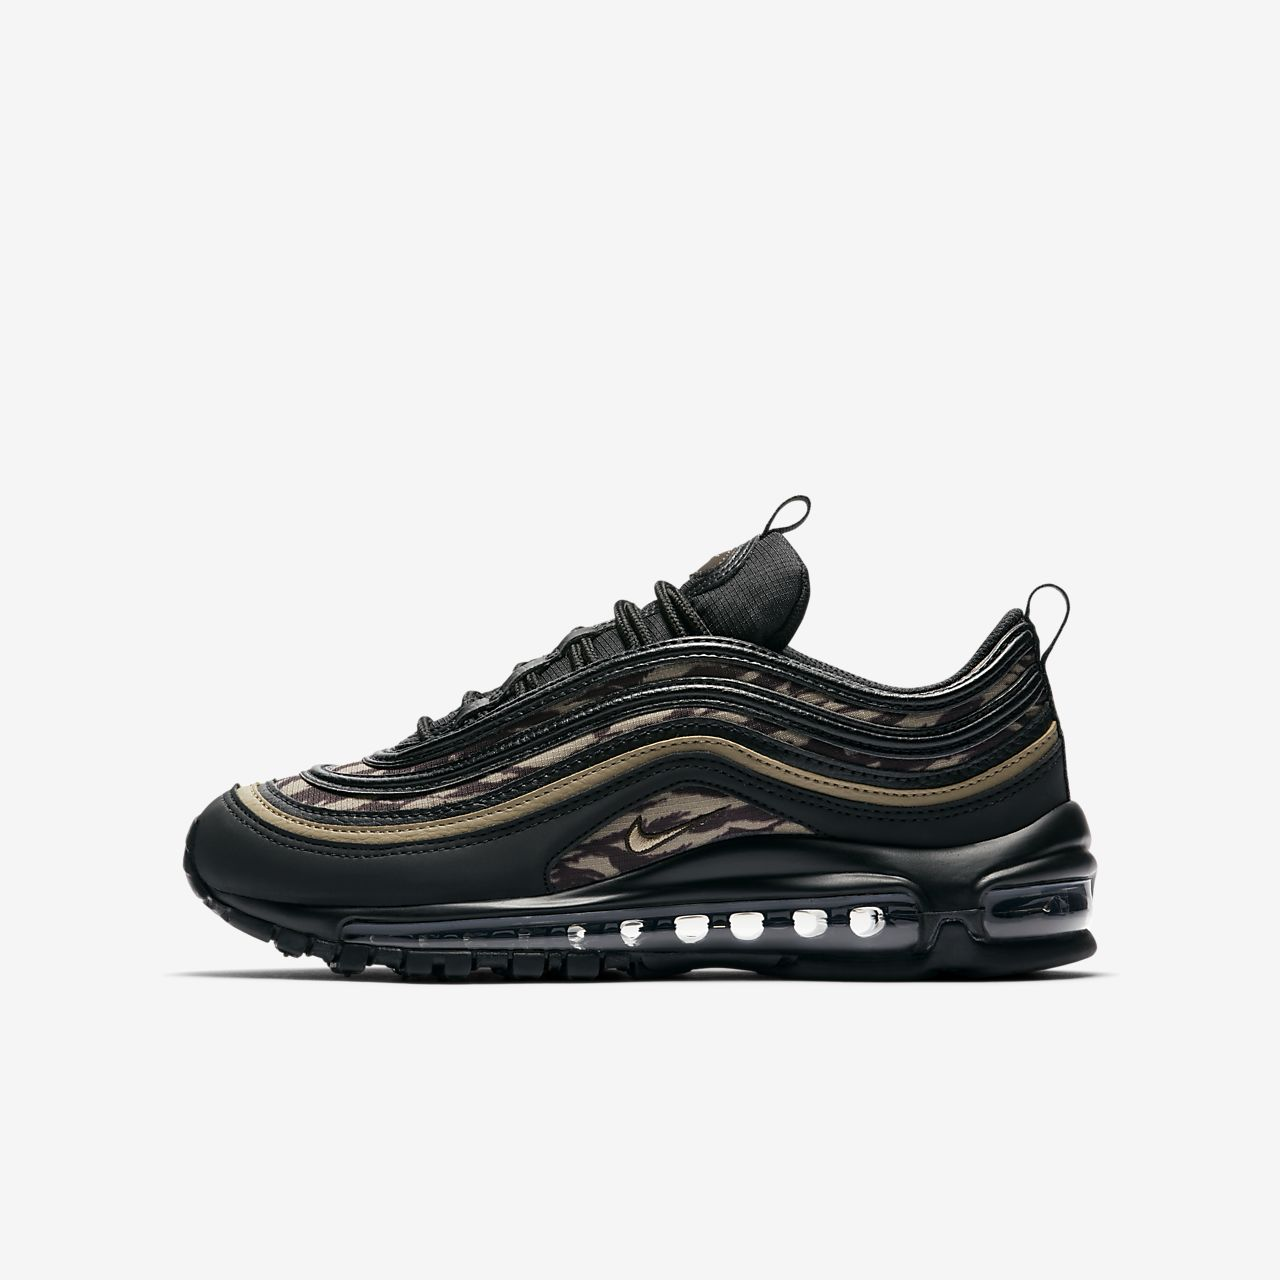 Undefeated x Nike Air Max 97 'Flight Jacket' AJ1986 300 Official